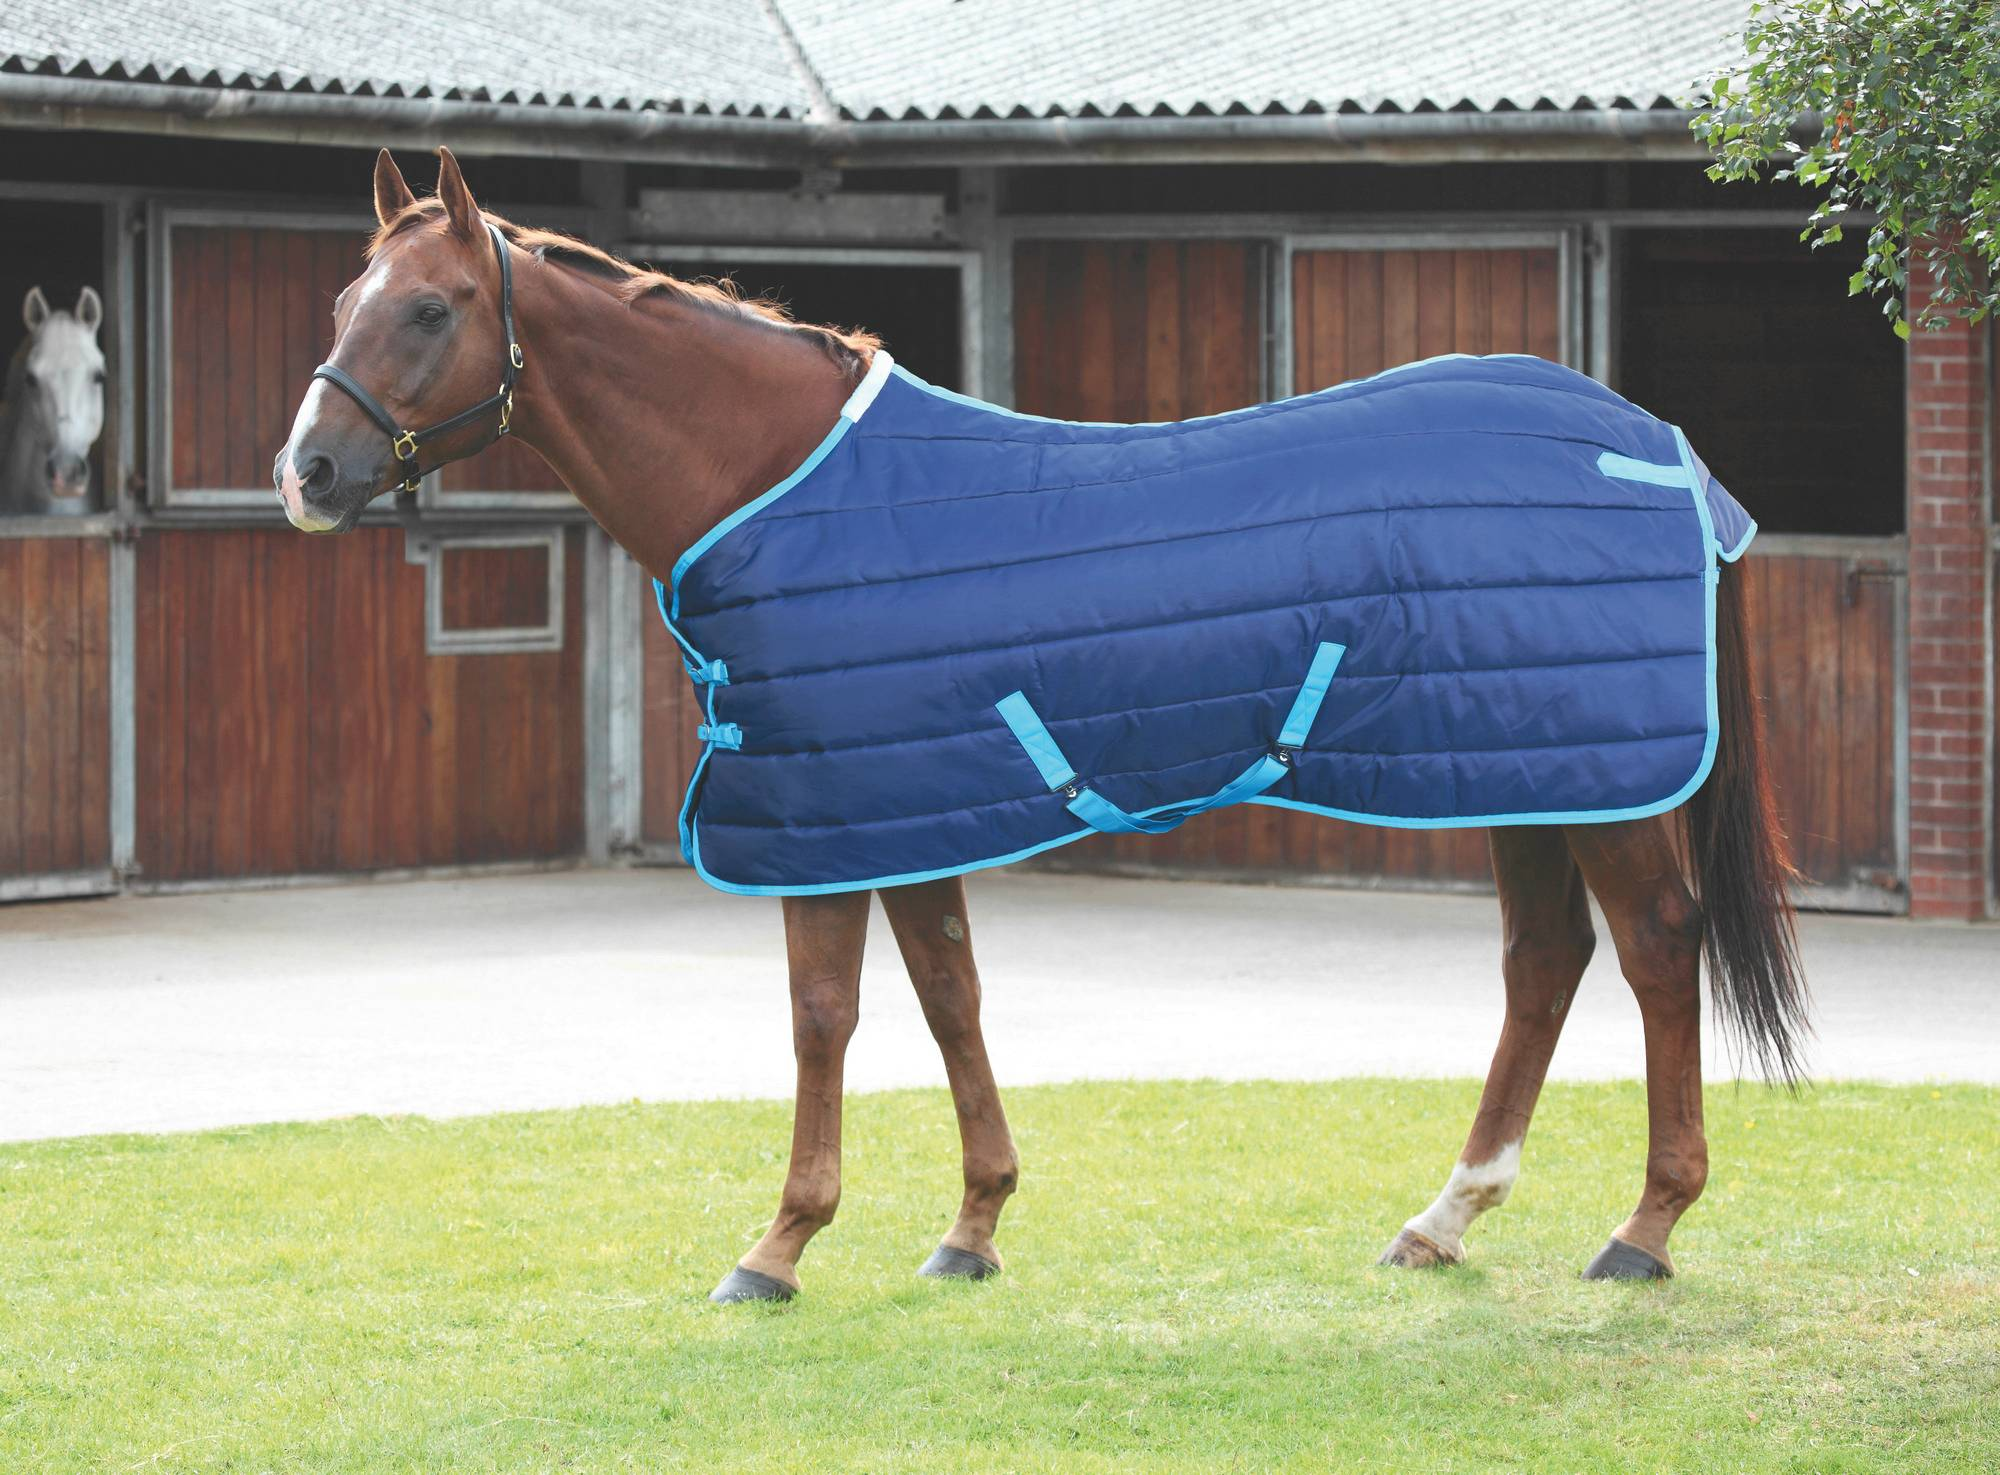 Shires Tempest 200G Stable Blanket